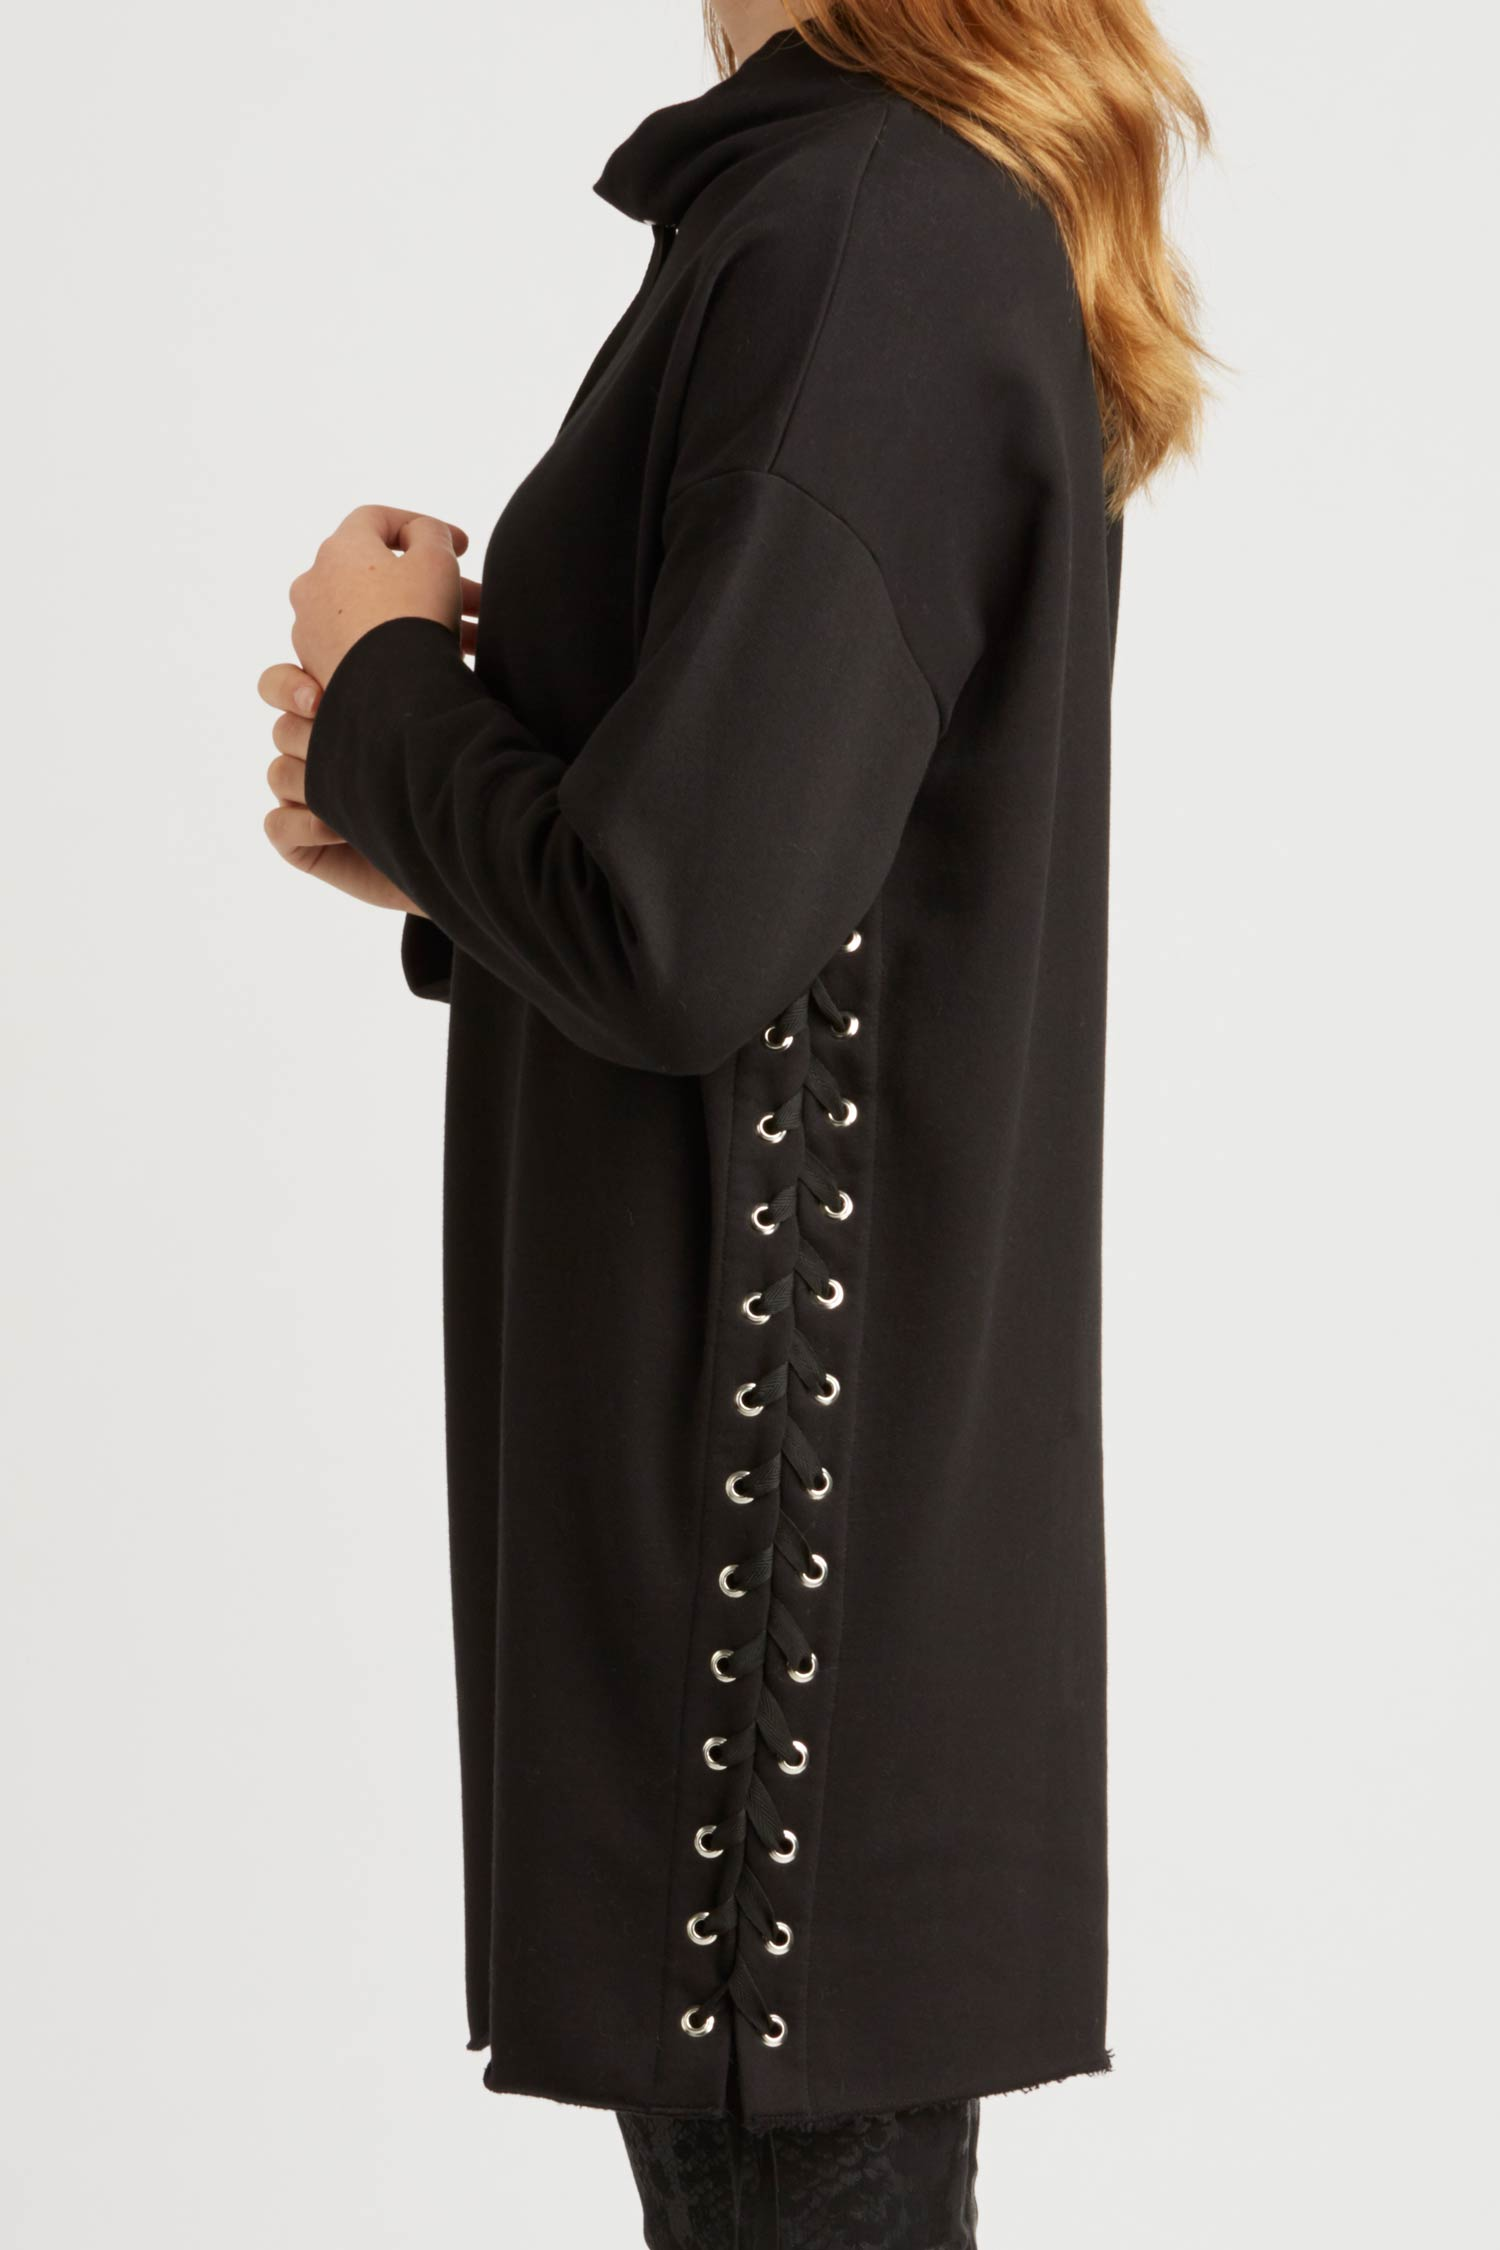 Womens Tunic in Black Organic Cotton Fleece with Lace Up Detail